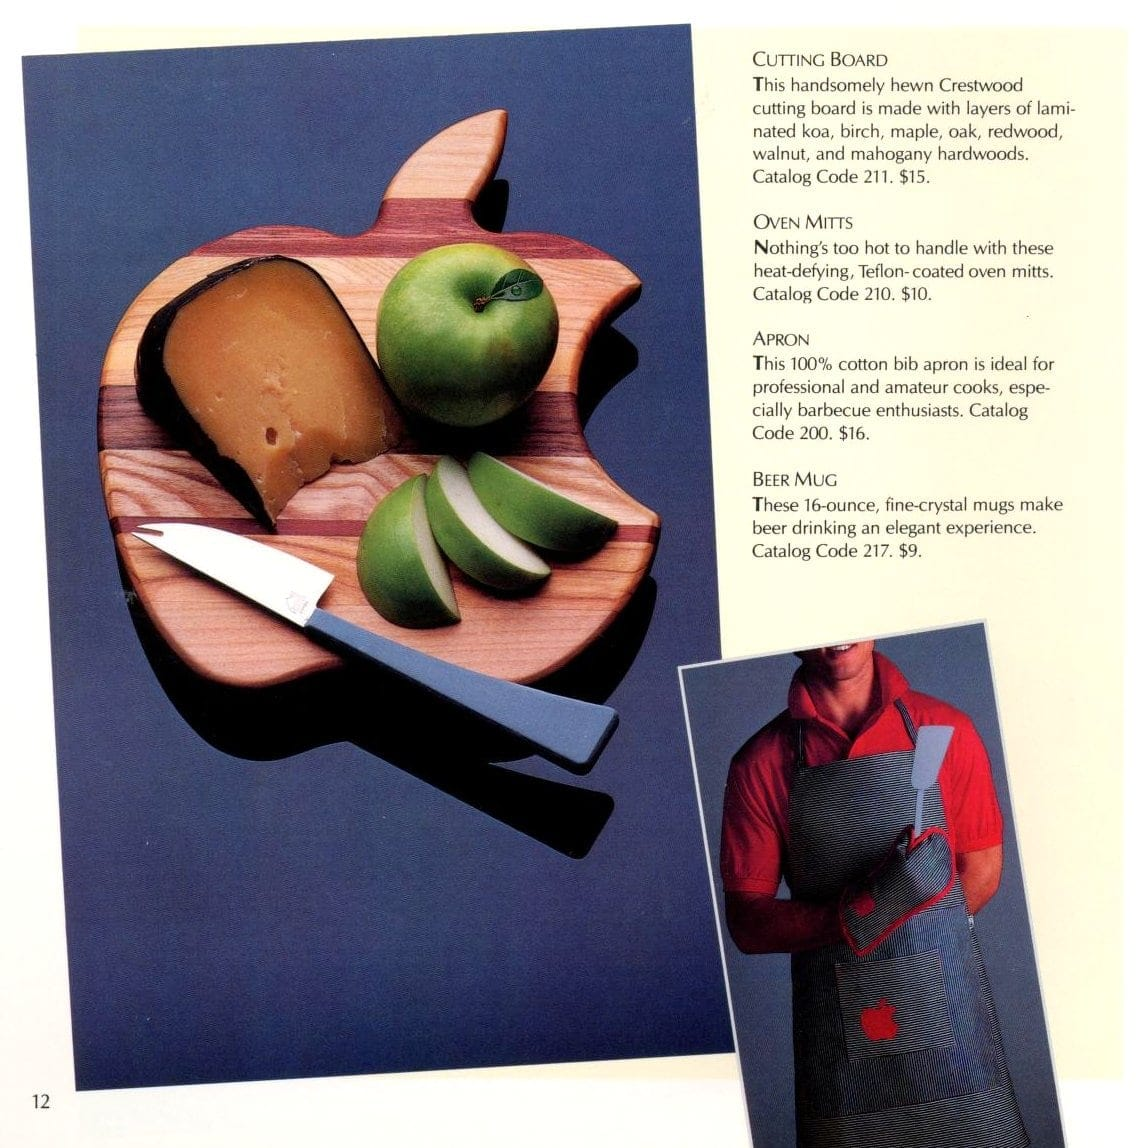 Cutting board and apron